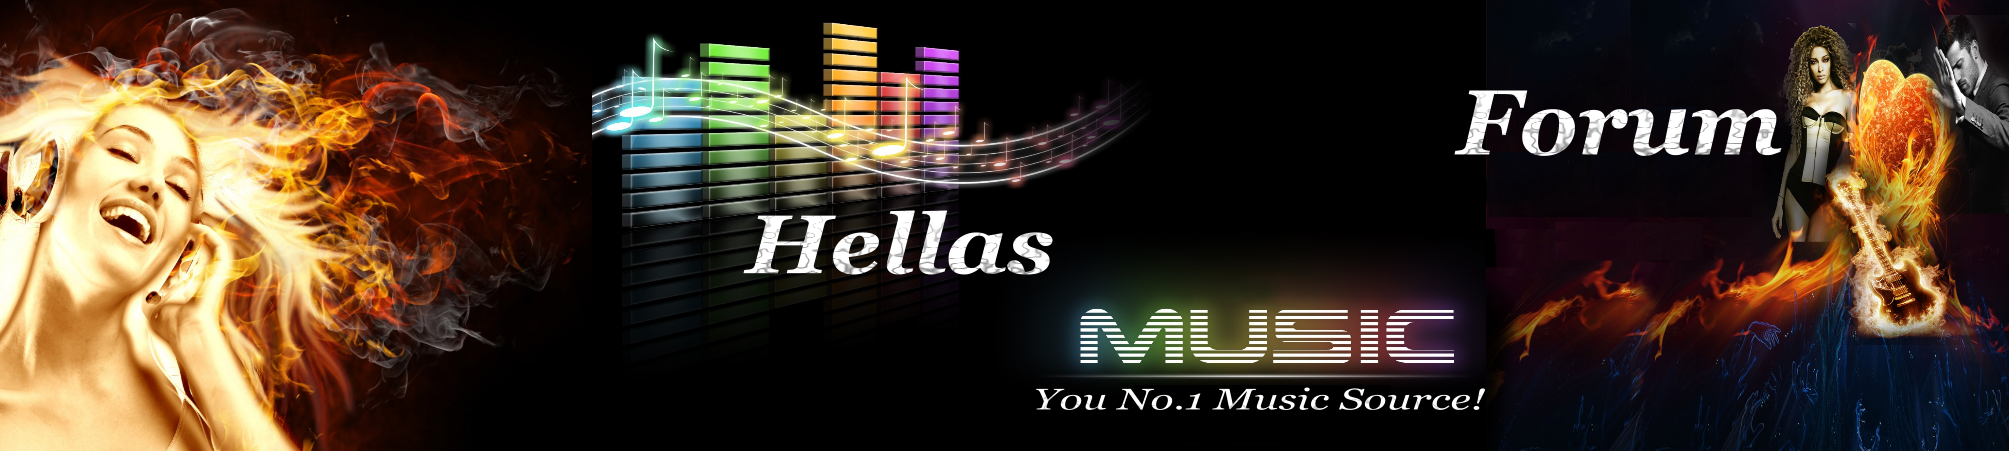 http://www.hellas-music-forum.com